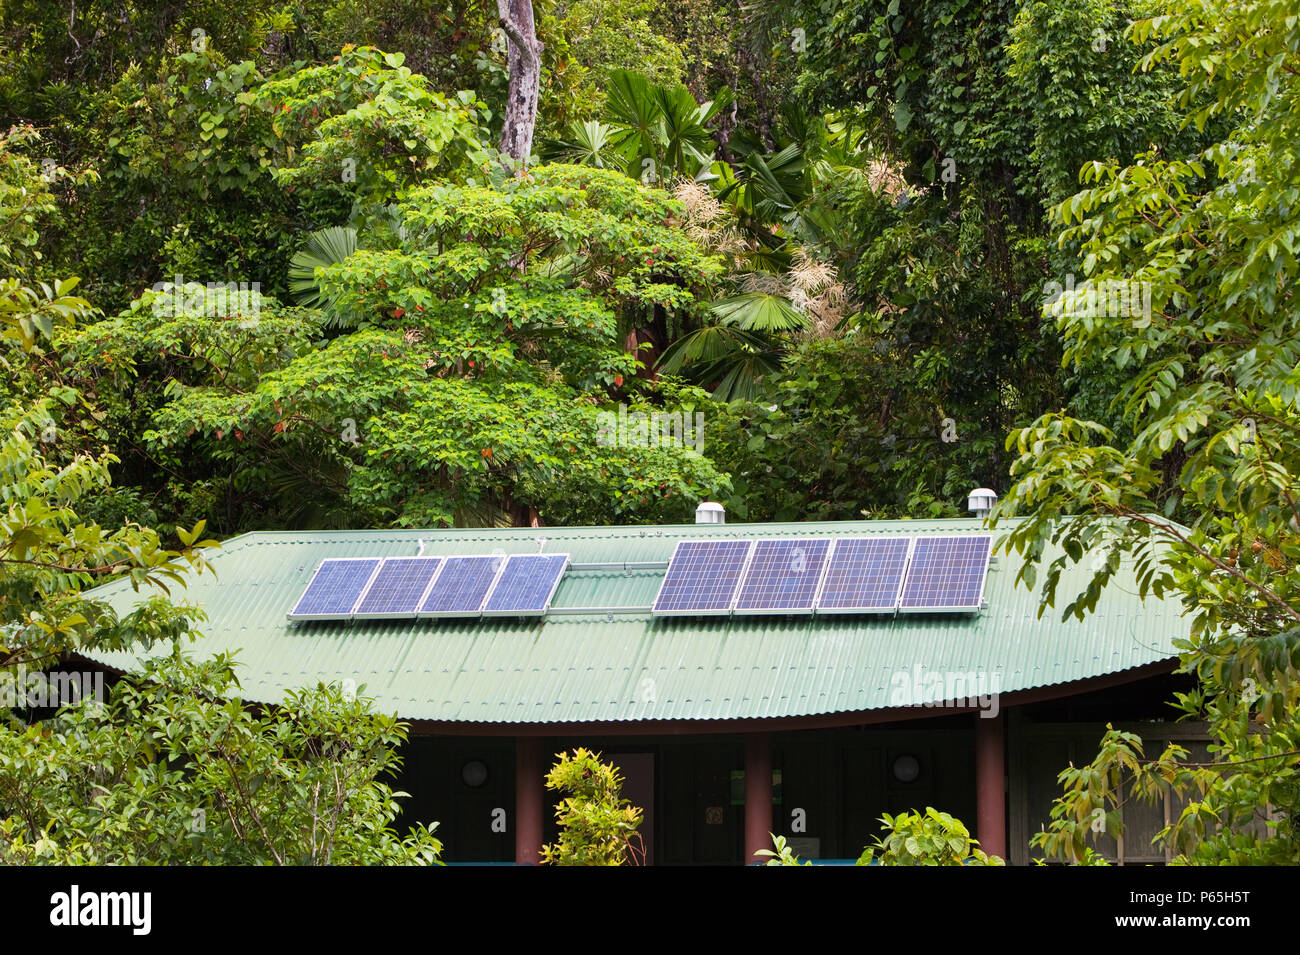 A toilet block with solar panels on the roof in the Daintree rainforest in the North of Queensland, Australia, which is the oldest continuously forest - Stock Image